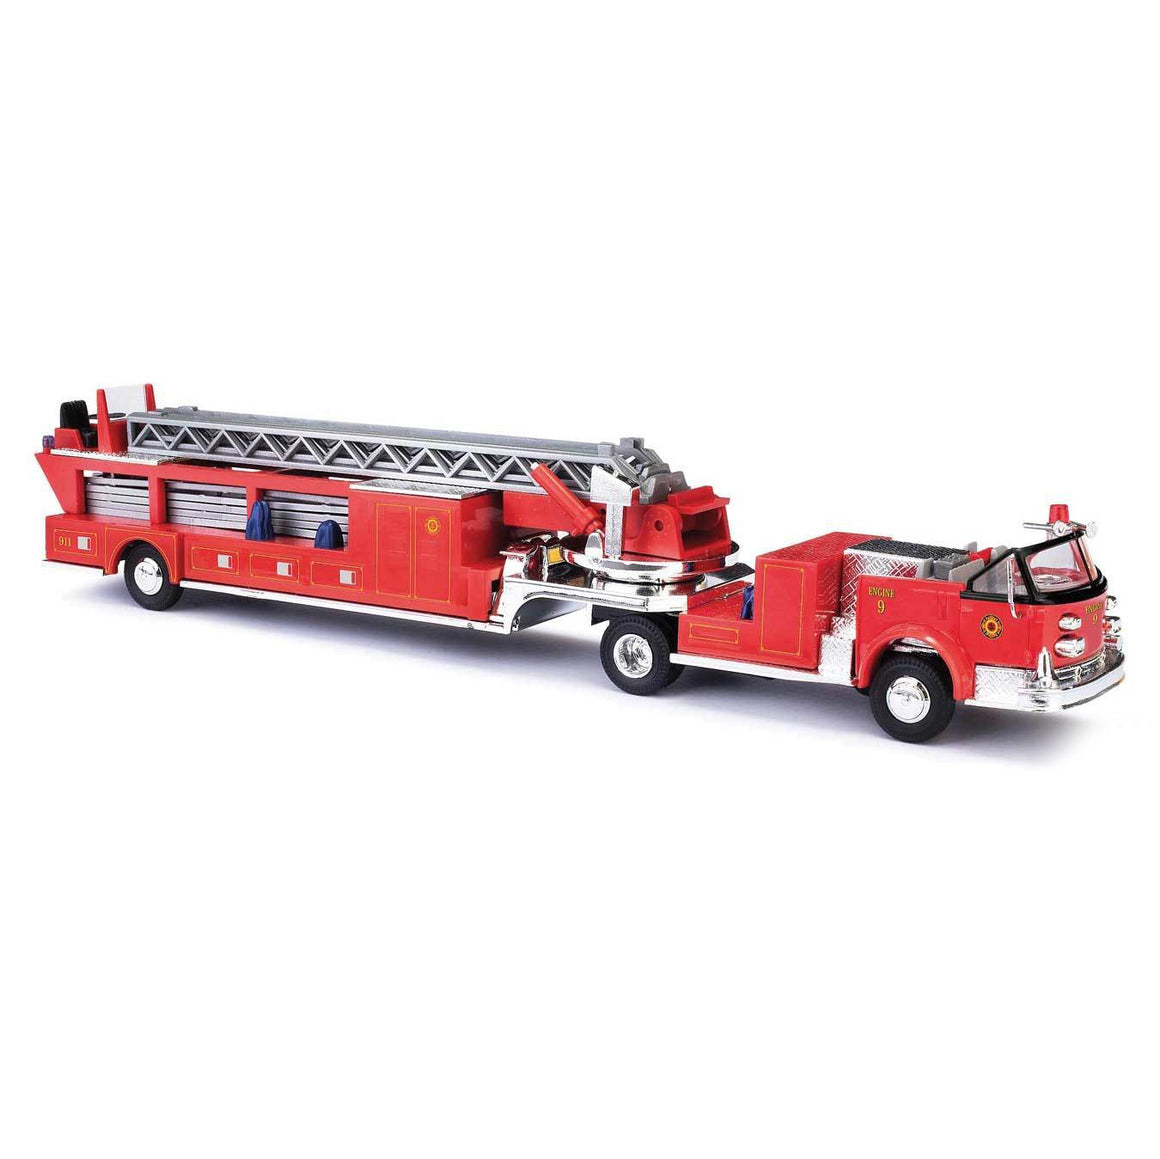 HO Scale: 1968 American-LaFrance Fire Hook and Ladder Truck w/ Open Cab